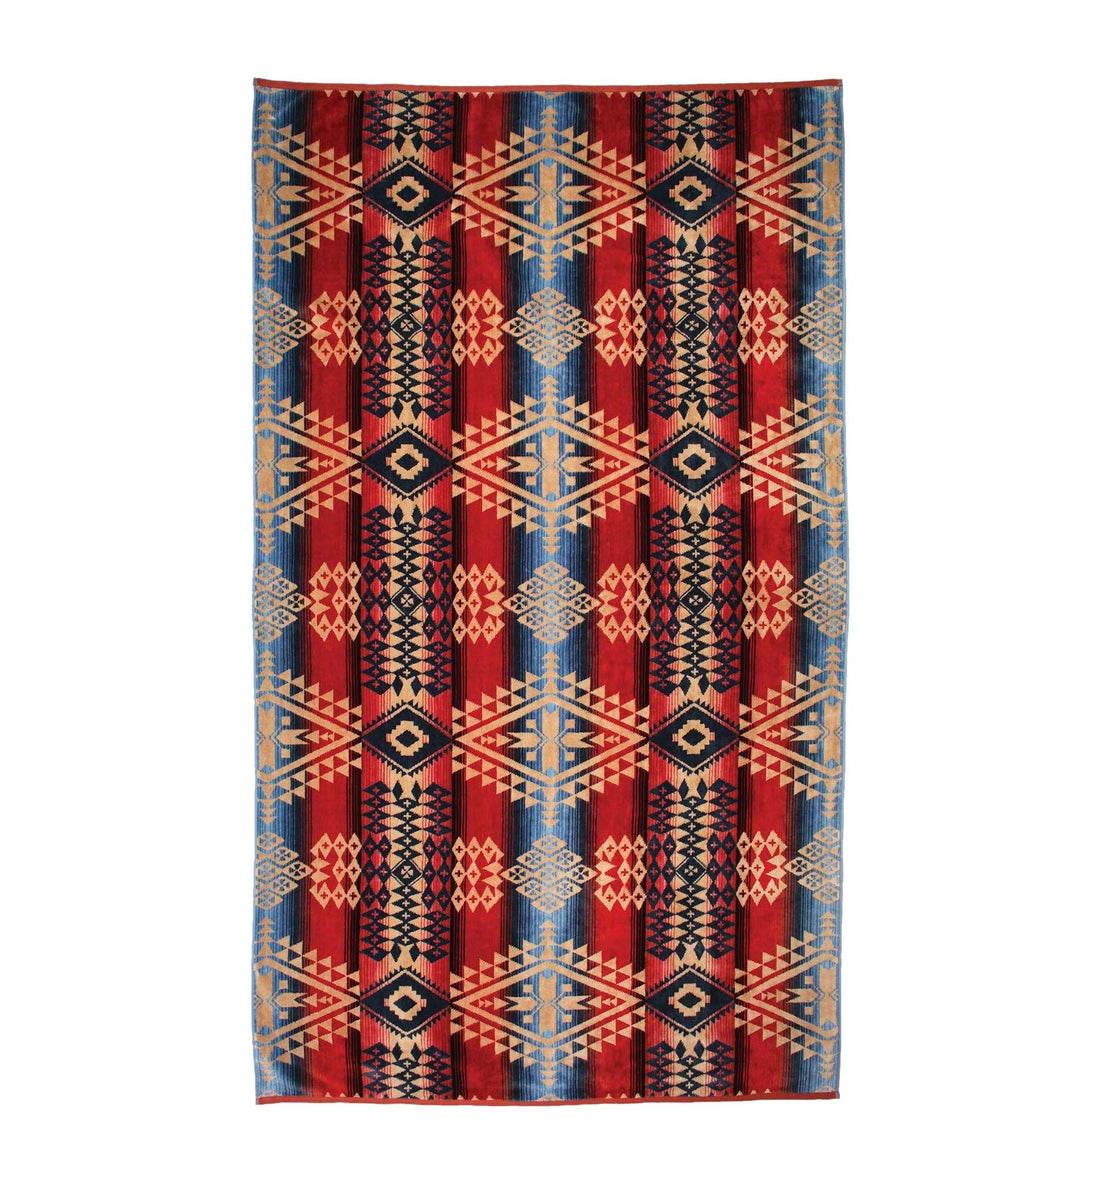 Pendleton Woolen Mills Oversized Jacquard Towel - Canyonlands - Outdoor Living/Travel - Iron and Resin